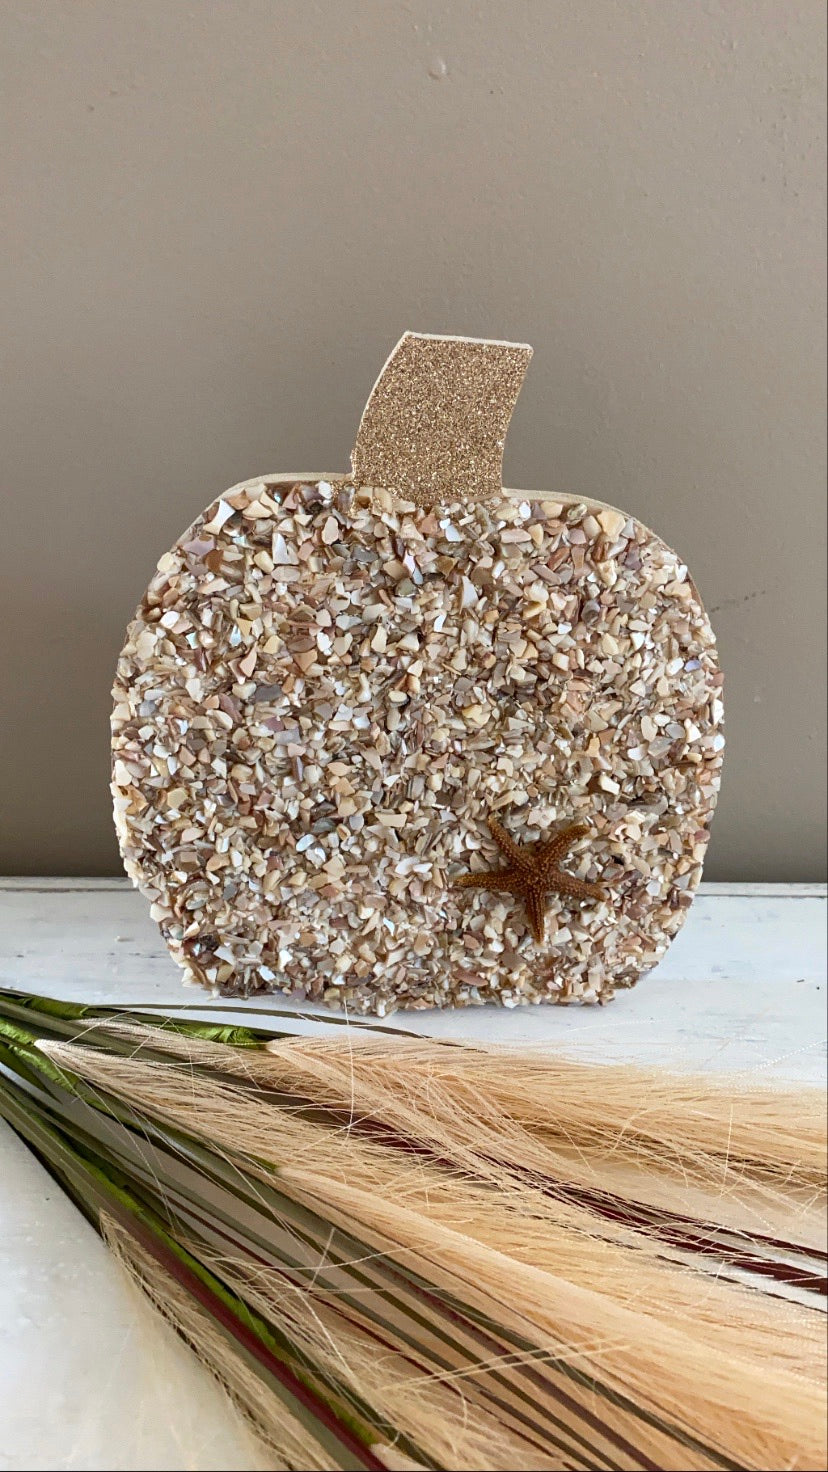 T1616 large wood pumpkin with shell mix